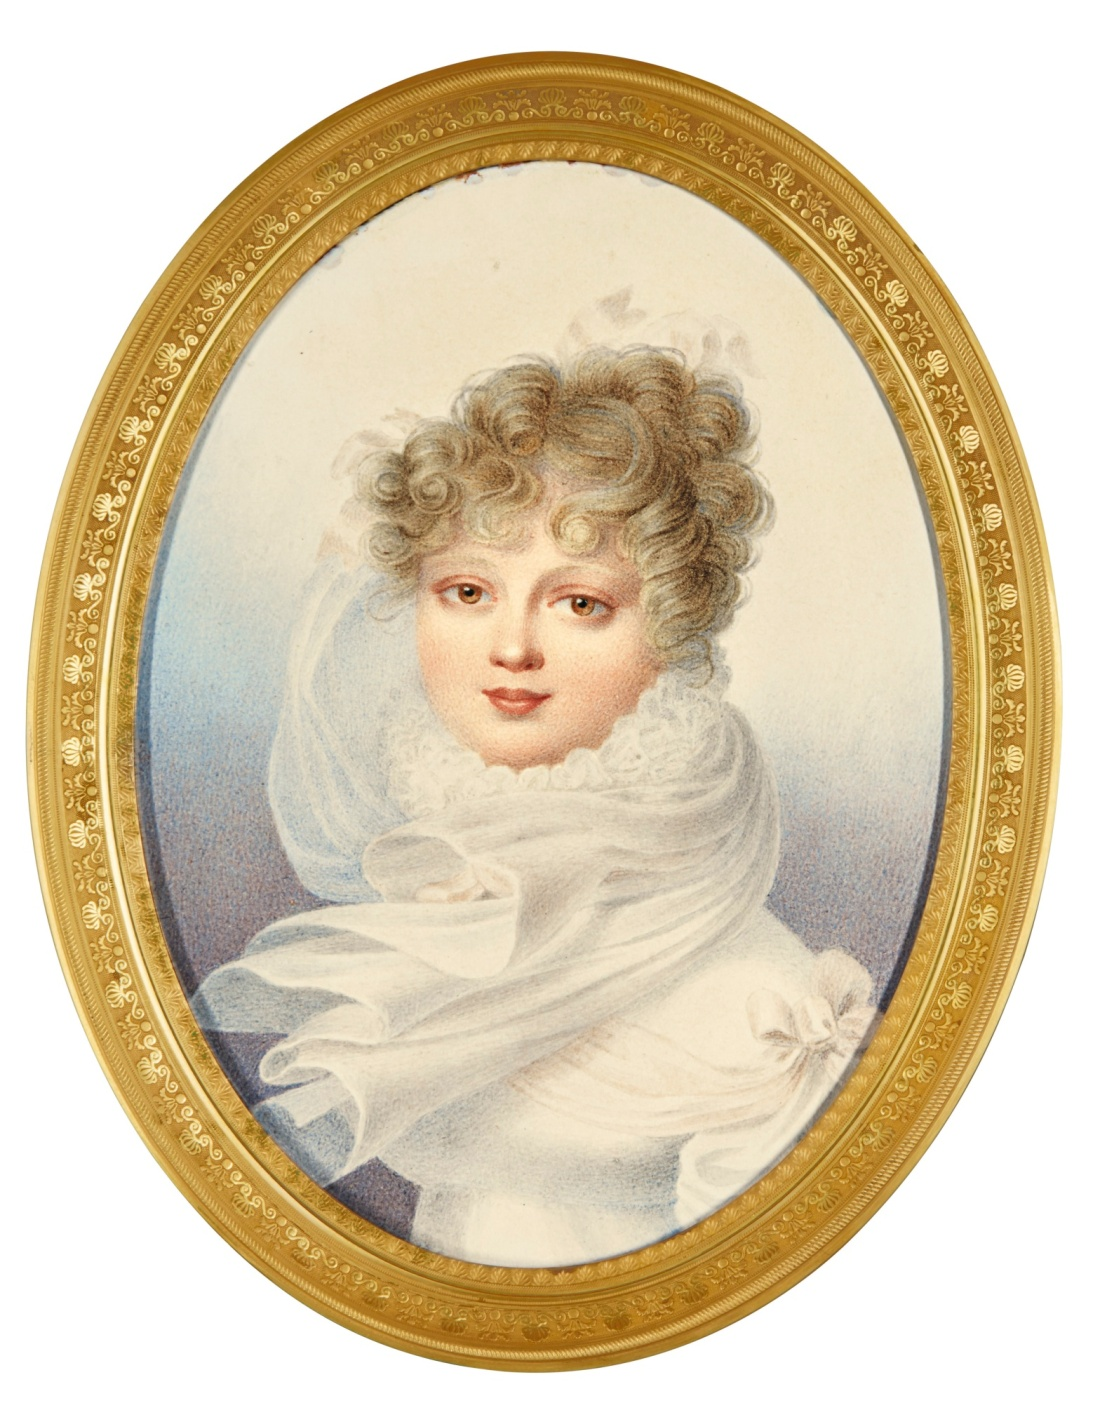 Miniature of Grand Duchess Ekaterina Pavlovna, daughter of Tsar Paul I. Later Queen of Württemberg (1788-1819). ca. 1821.